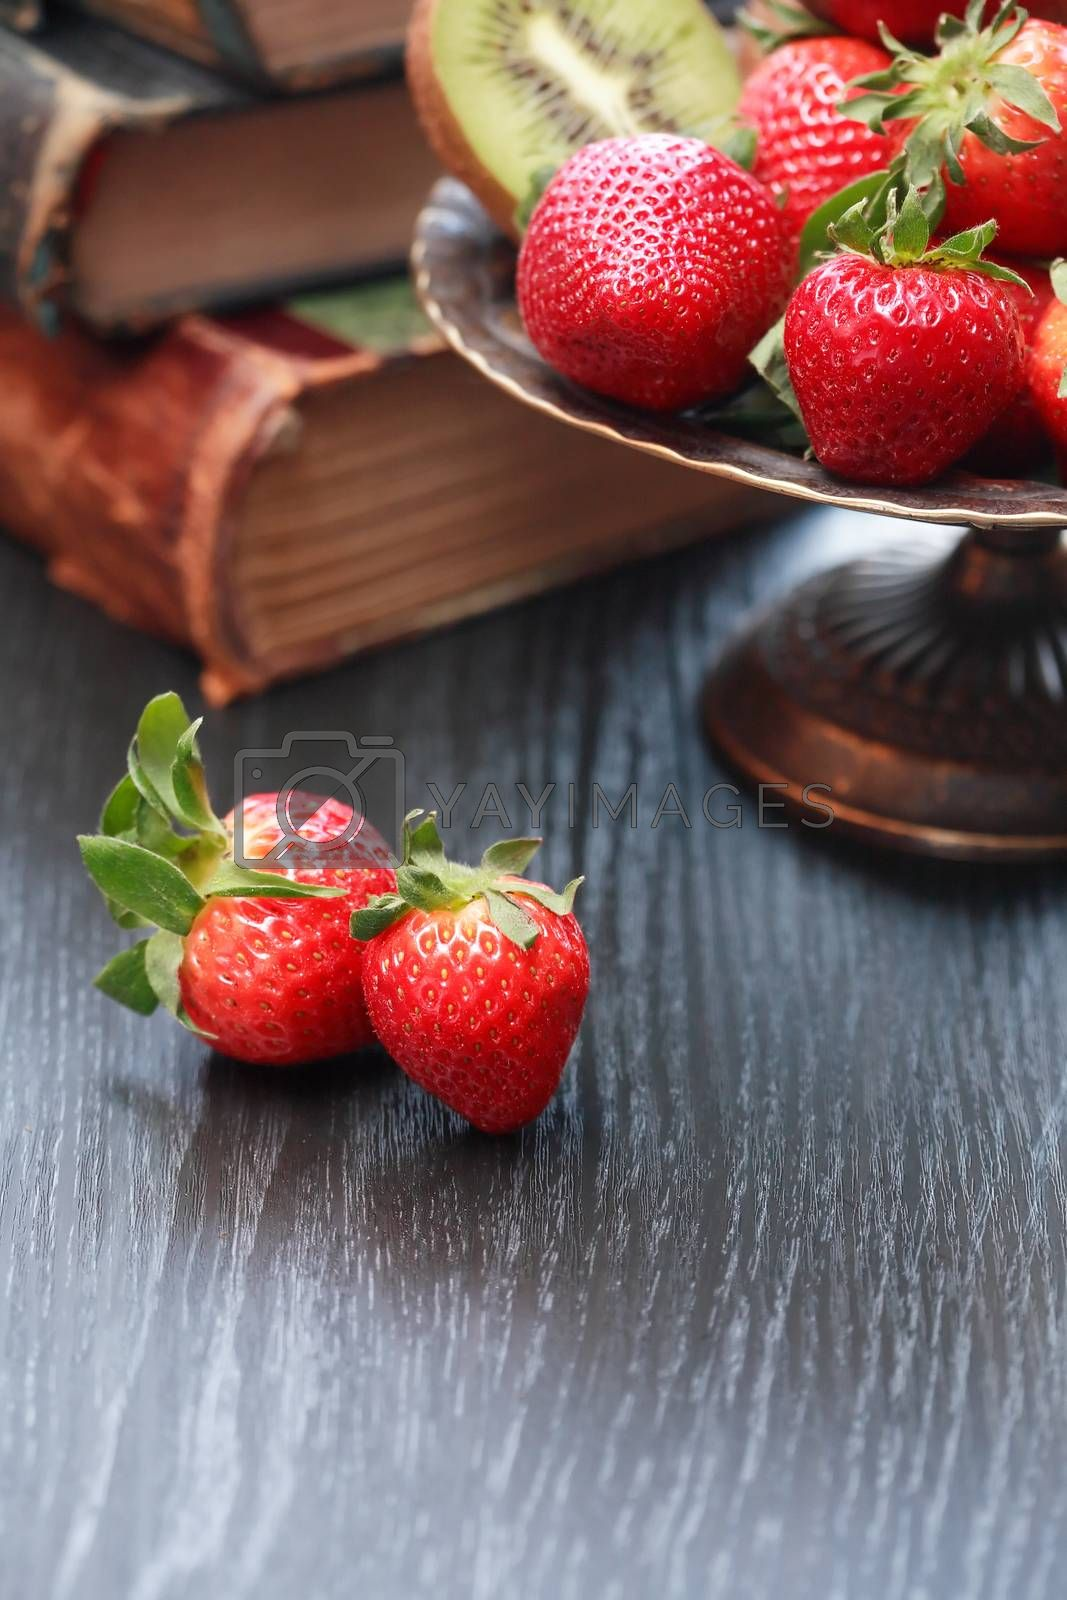 Royalty free image of Fruits And Books by kvkirillov